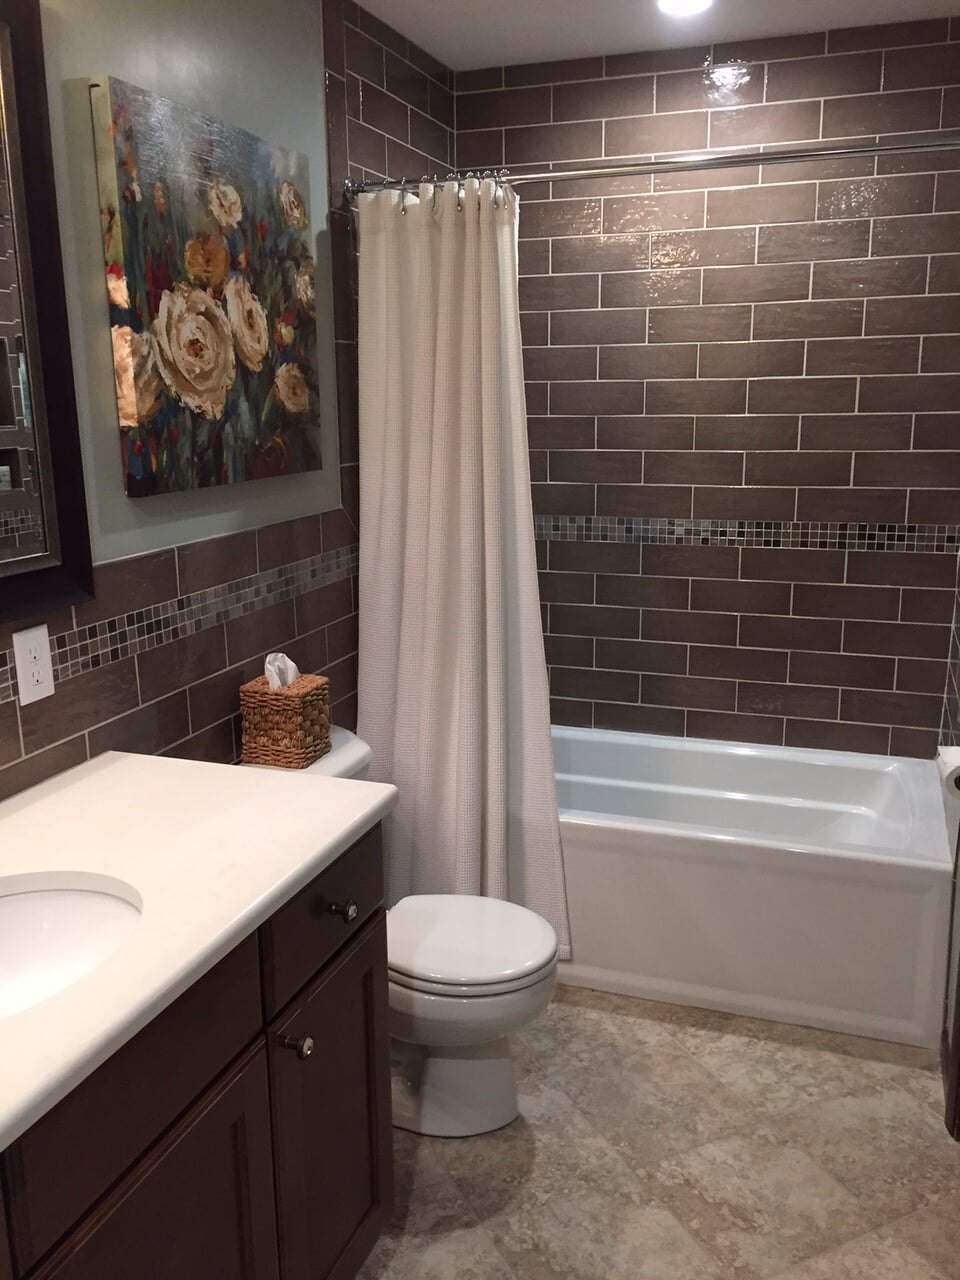 Luxury vinyl tile from Floorcrafters - Moline in Moline, IL